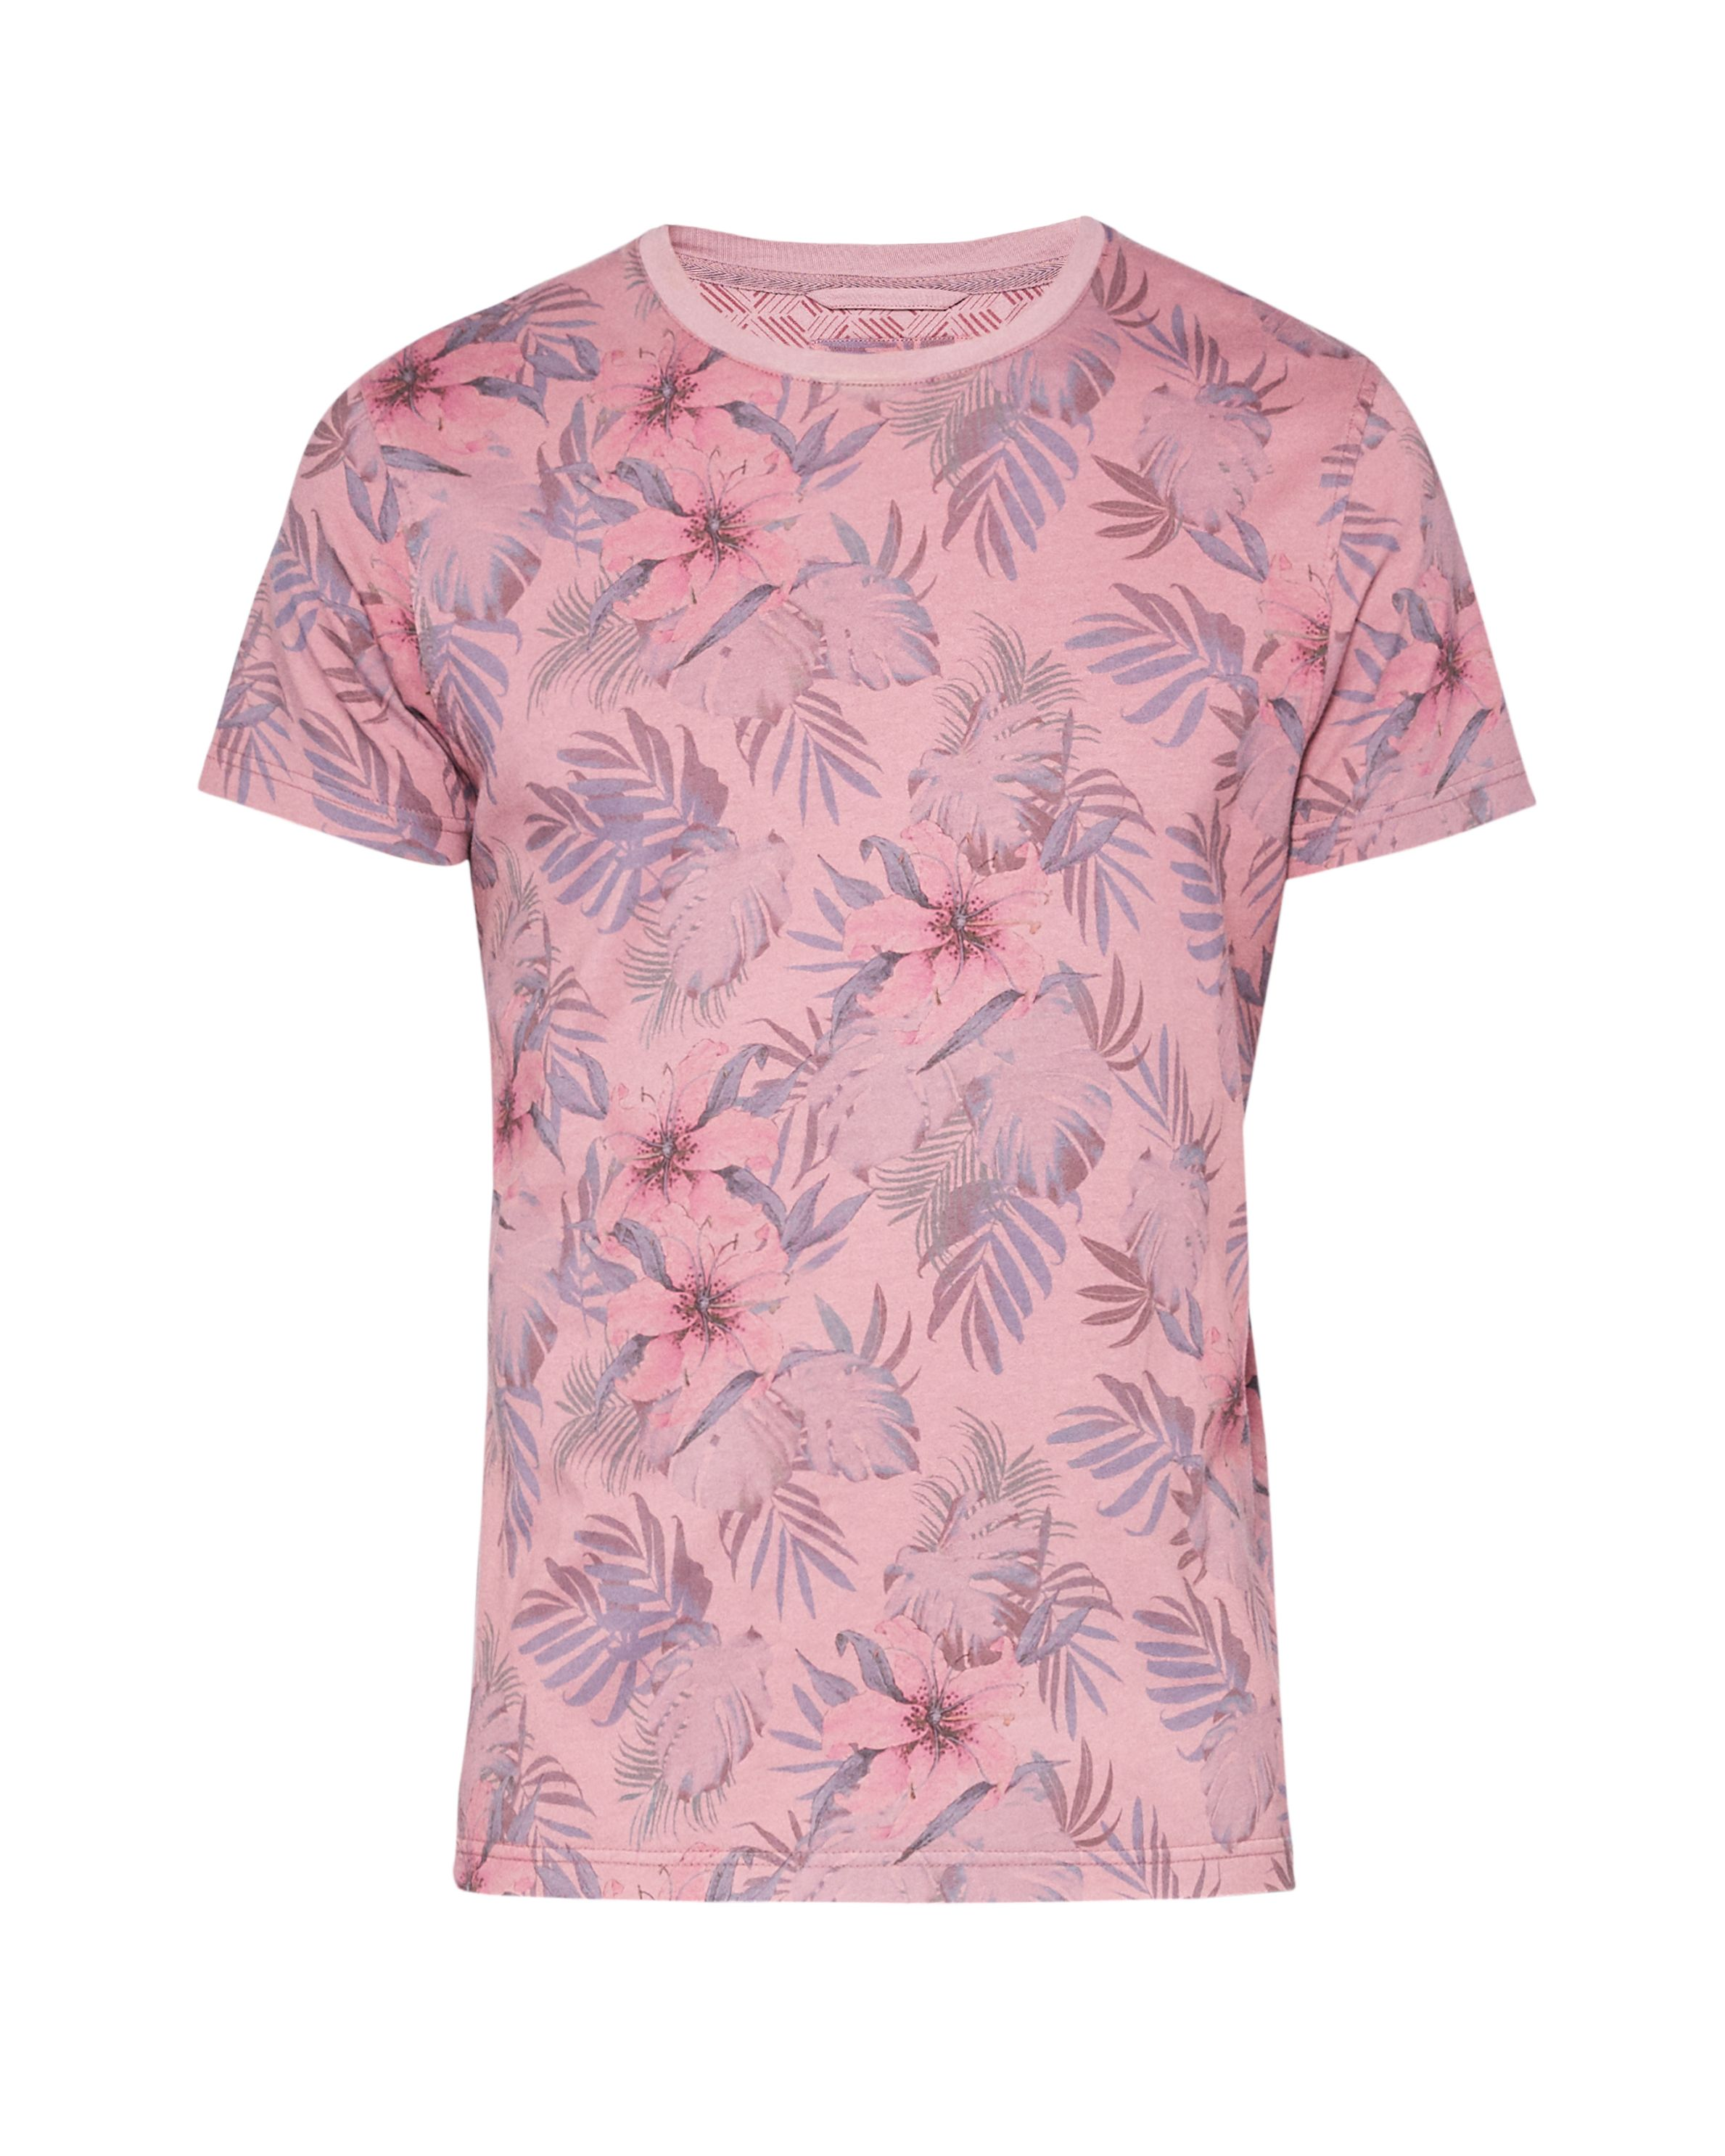 Men's Ted Baker Bartney Floral Print Cotton T-Shirt, Pink